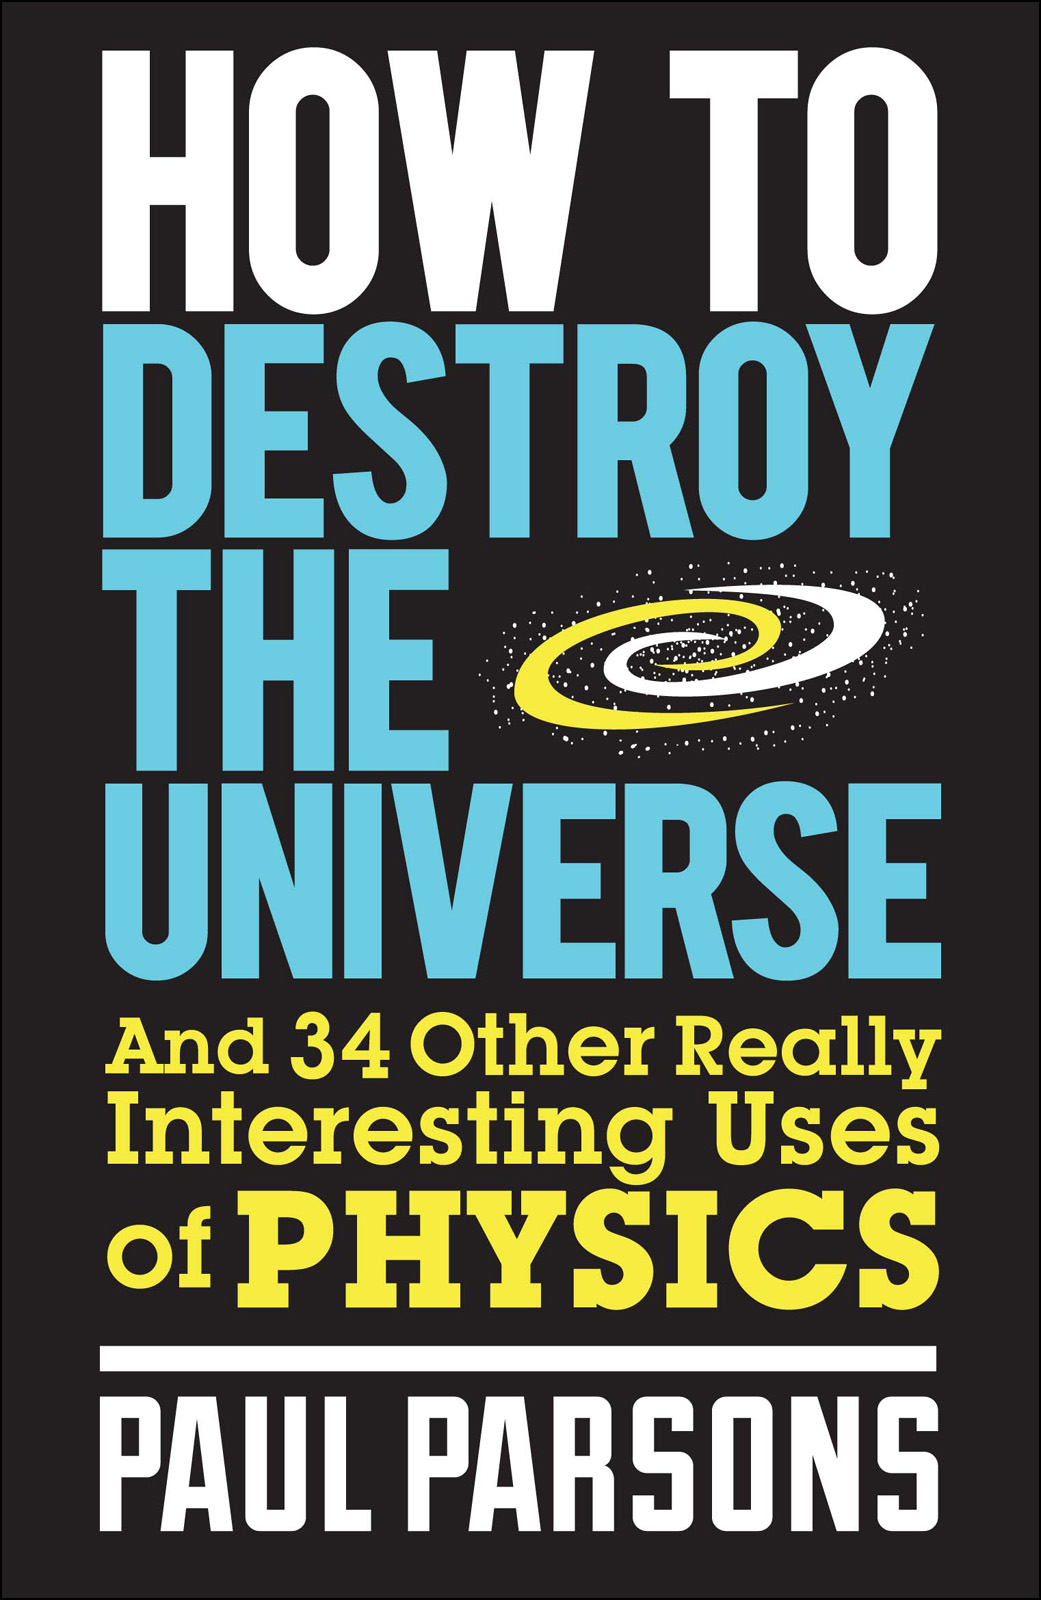 How to Destroy the Universe: And 34 Other Really Interesting Uses of Physics And 34 Other Really Interesting Uses of Physics